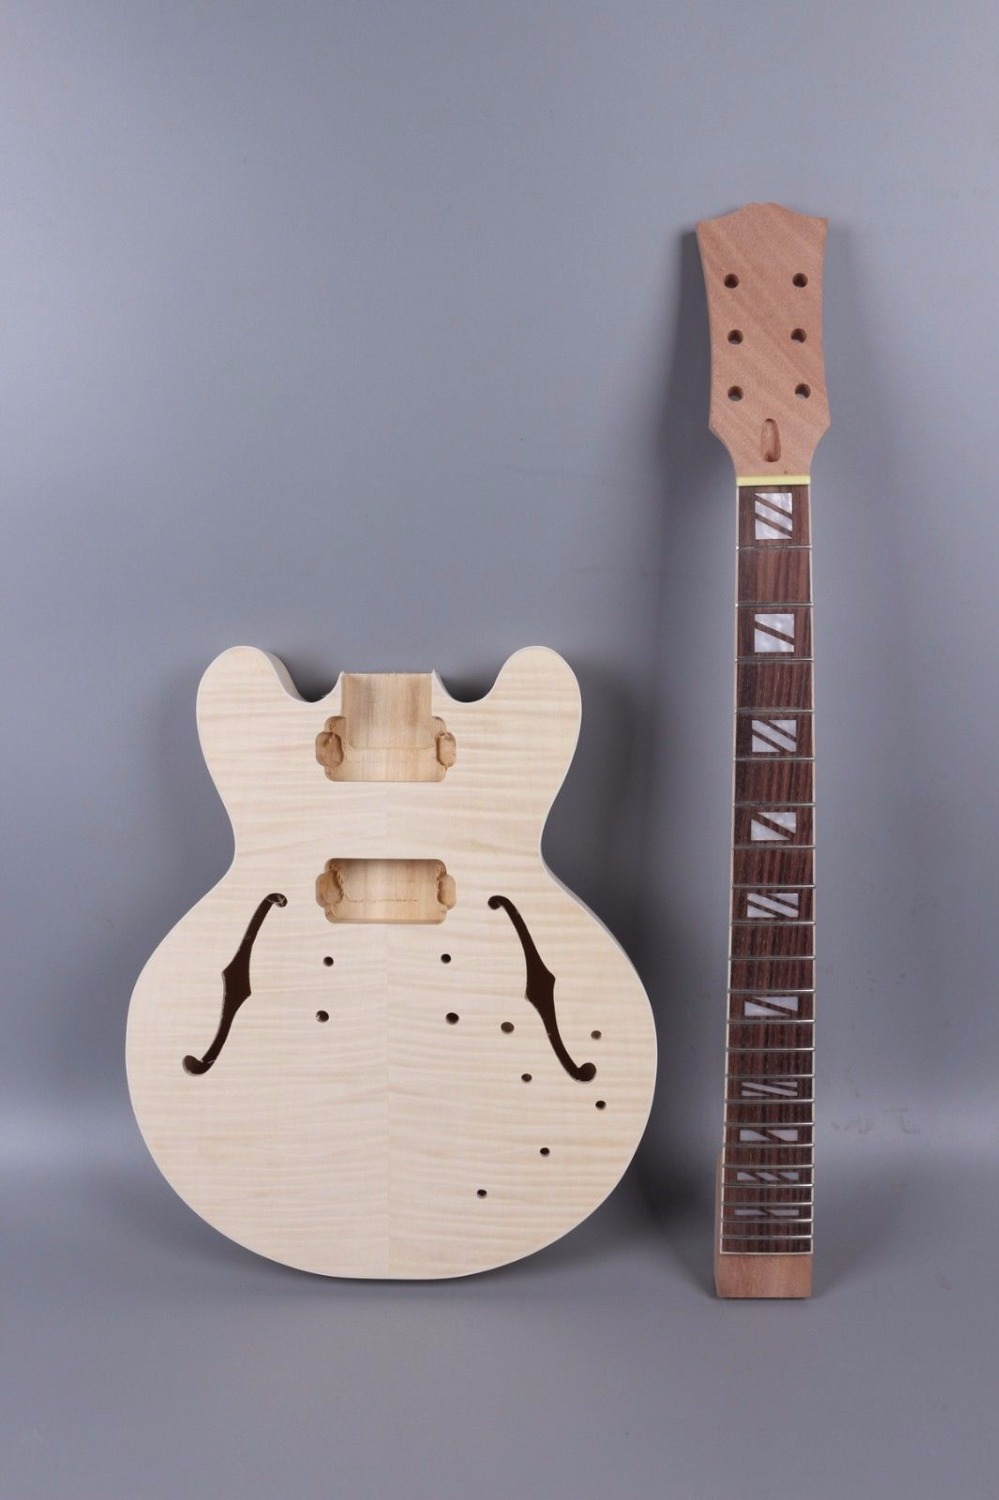 Yinfente SG Electric guitar body Unfinished Mahogany One-piece wood Made Bolt On one 21 unfinished electric guitar body mahogany made